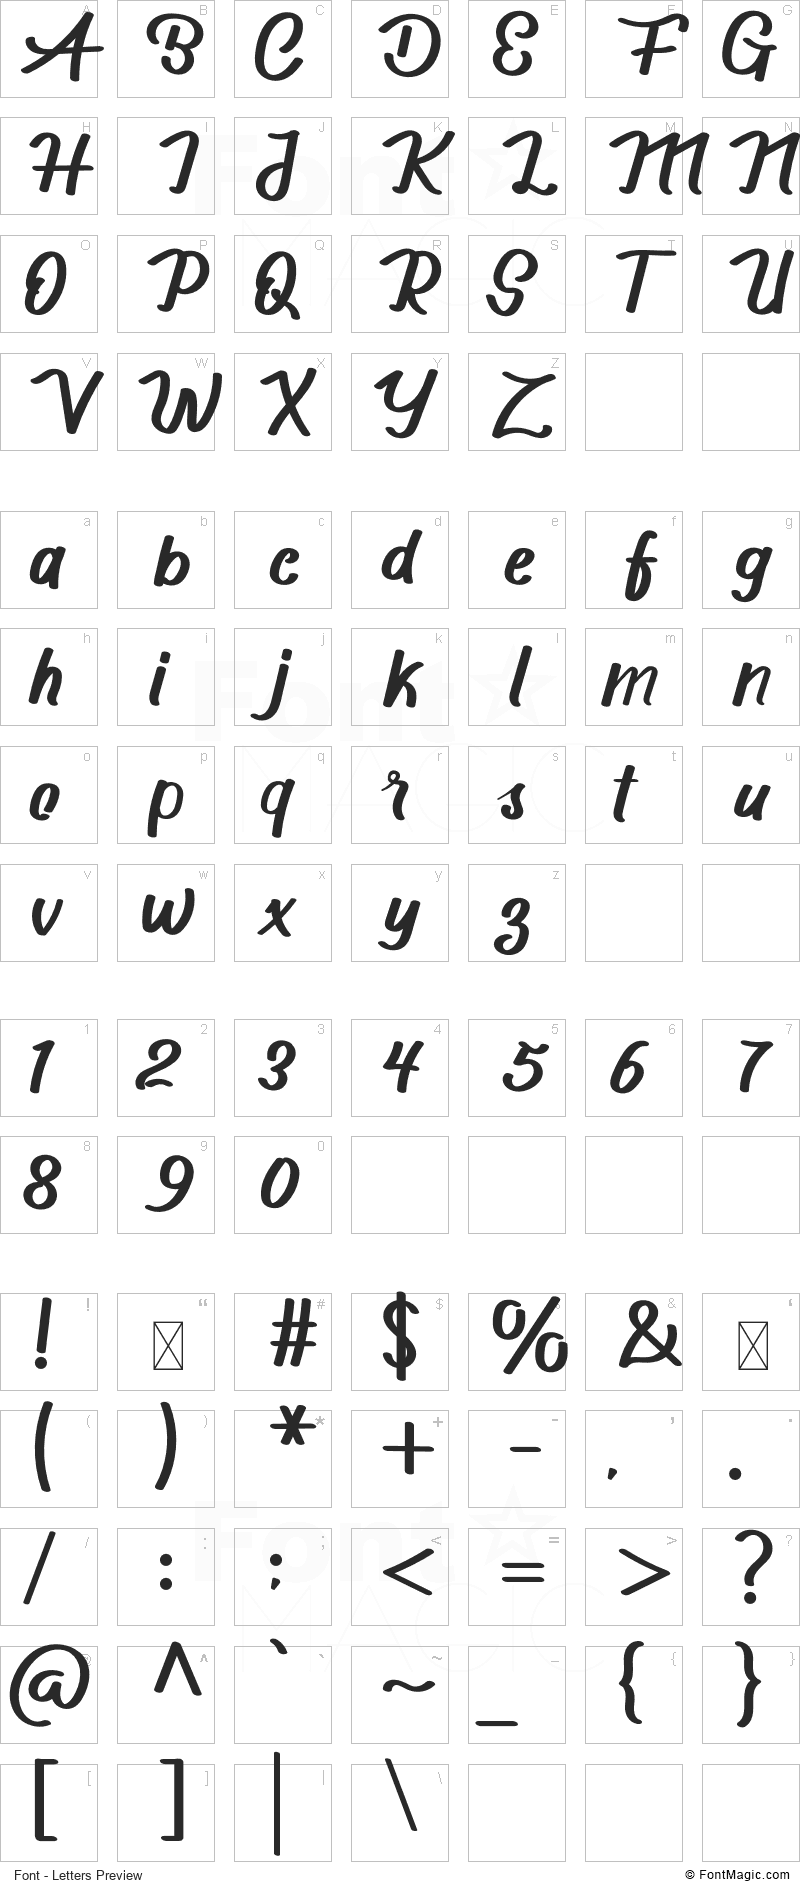 Scotters Font - All Latters Preview Chart